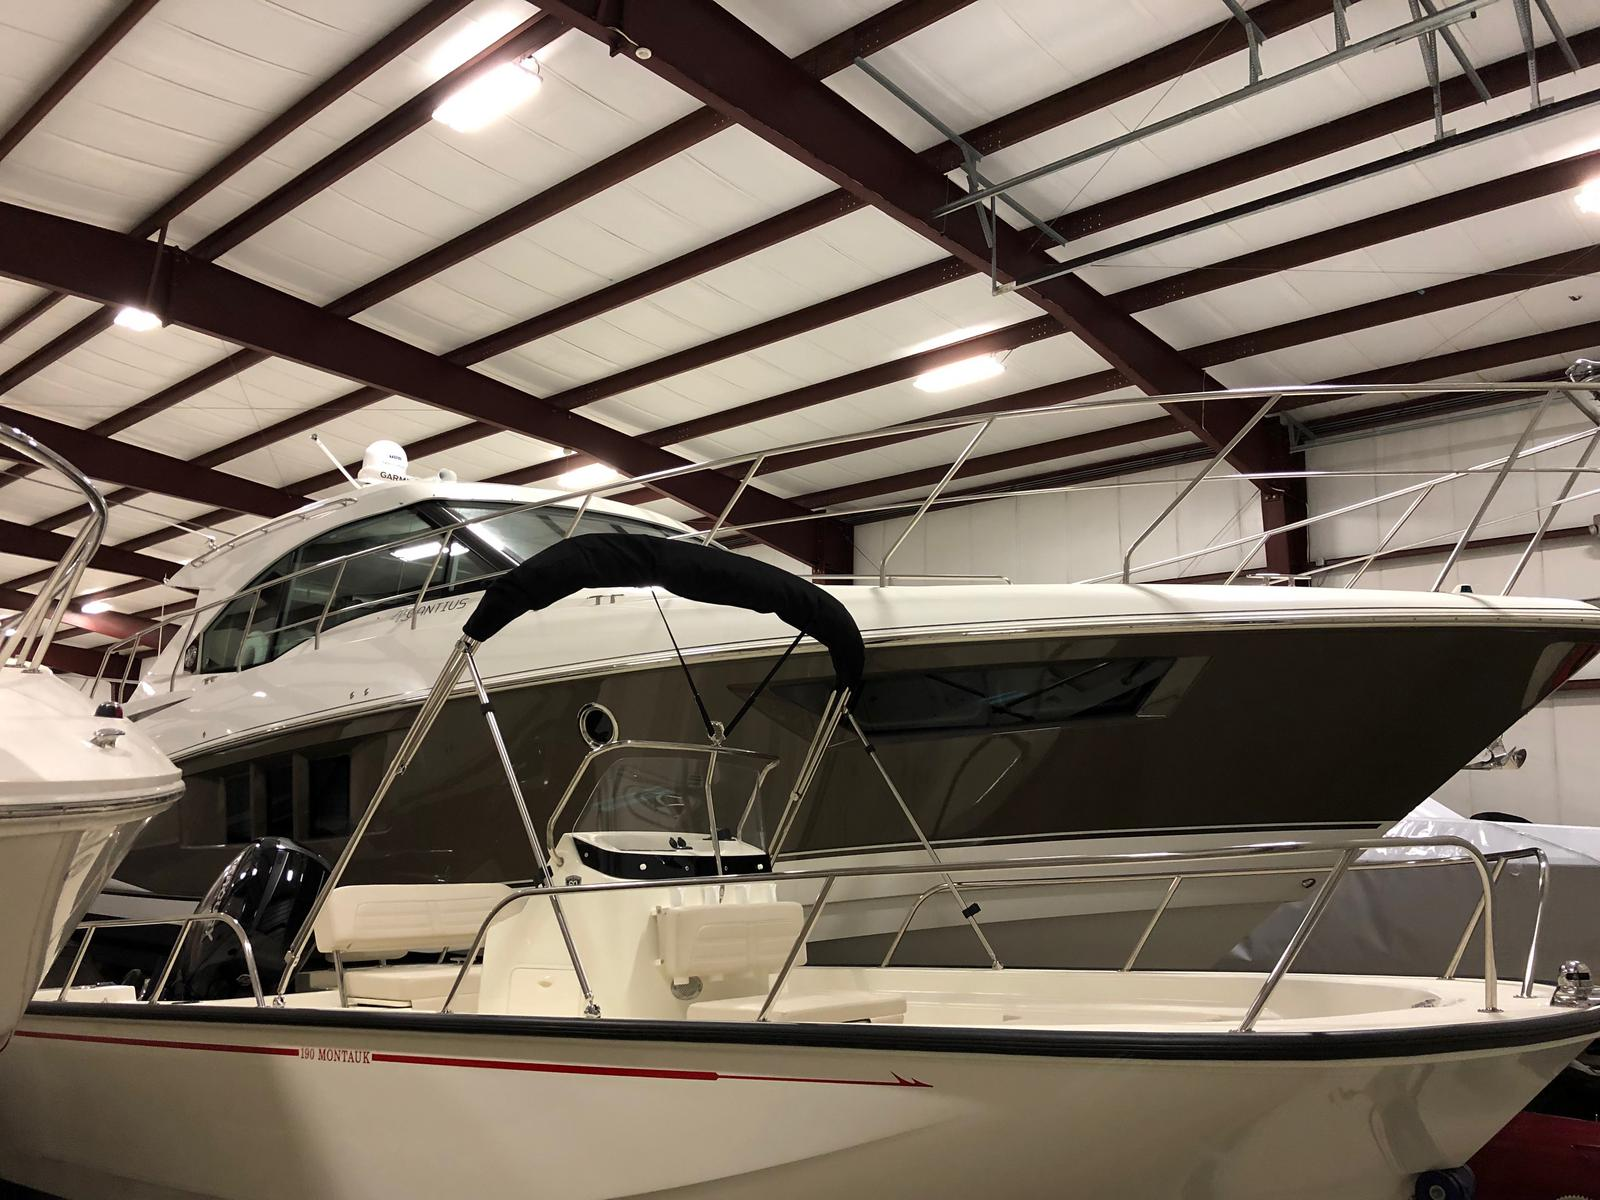 2016 Cruisers Yachts boat for sale, model of the boat is 45 Cantius & Image # 7 of 16